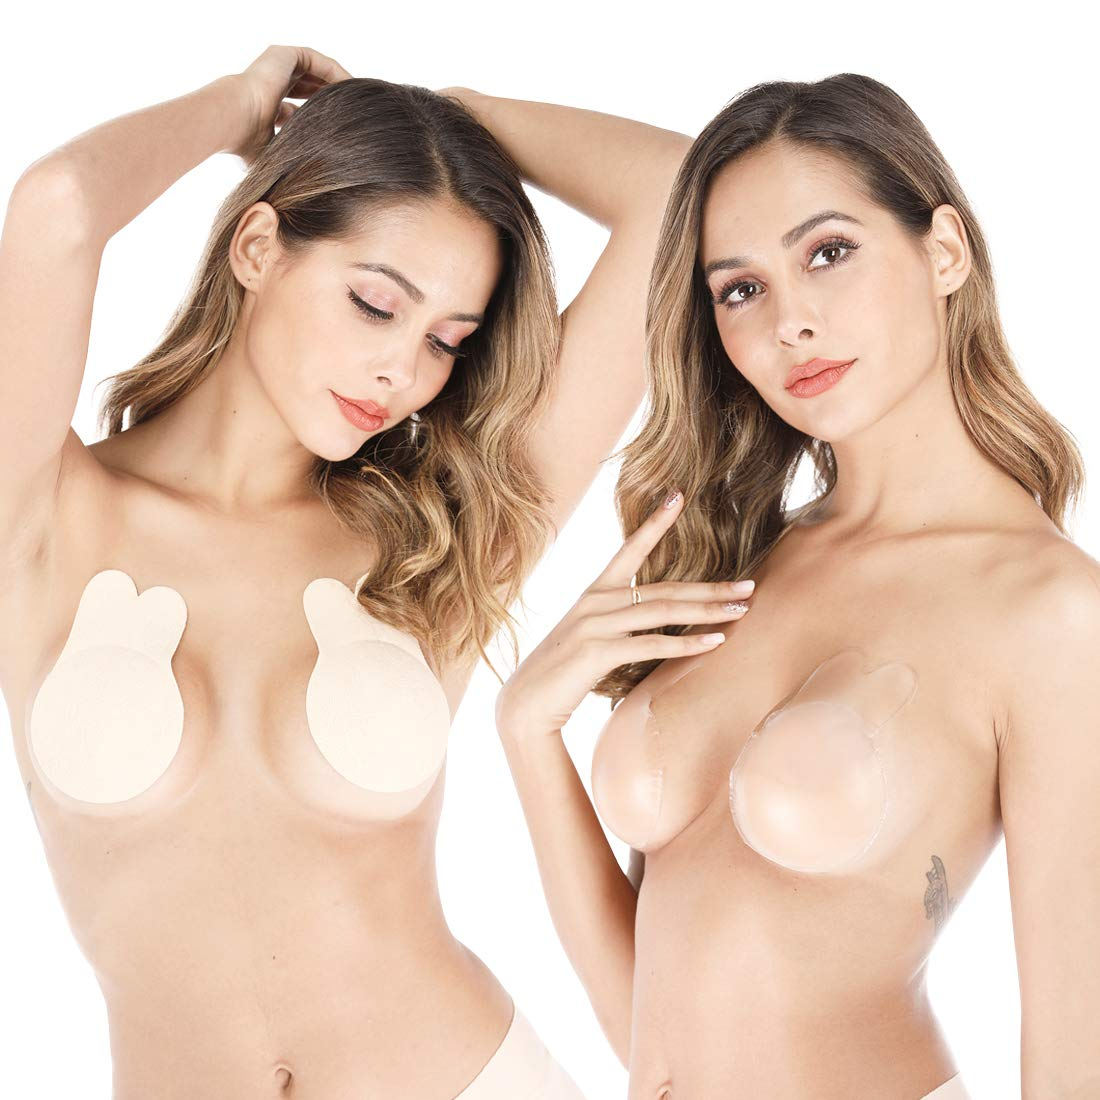 VIRONY Adhesive Bunny Bra Silicone Nipple Cover Magic Beauty Instant Bob Lift Pasties Breast Lifters for Women